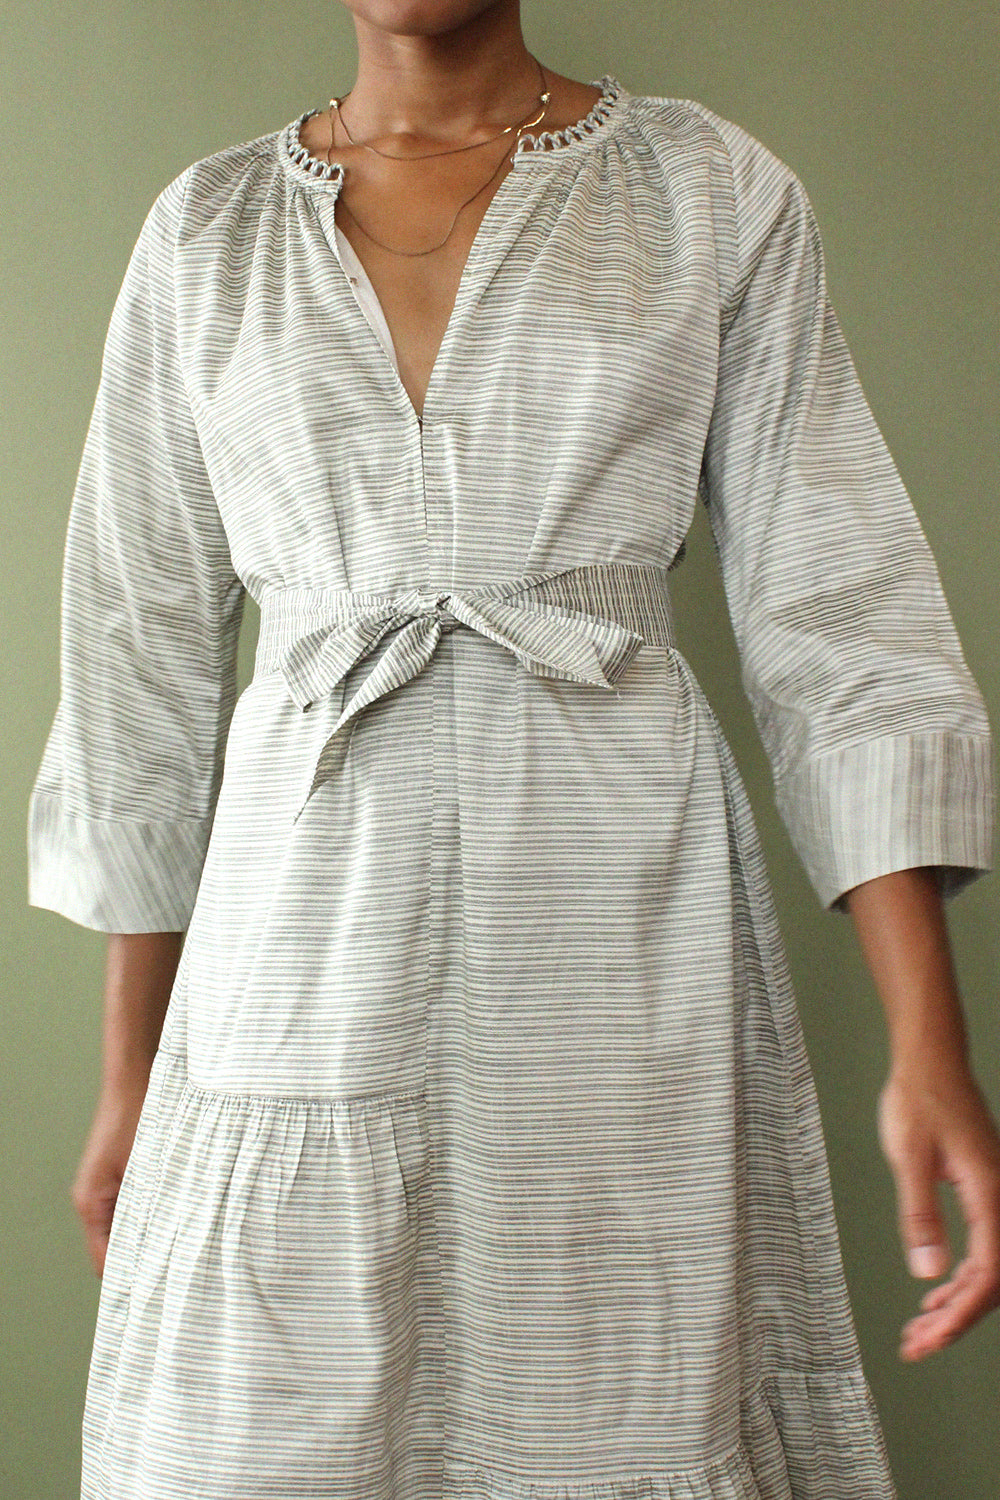 Silver Stripe Smock Dress S-L